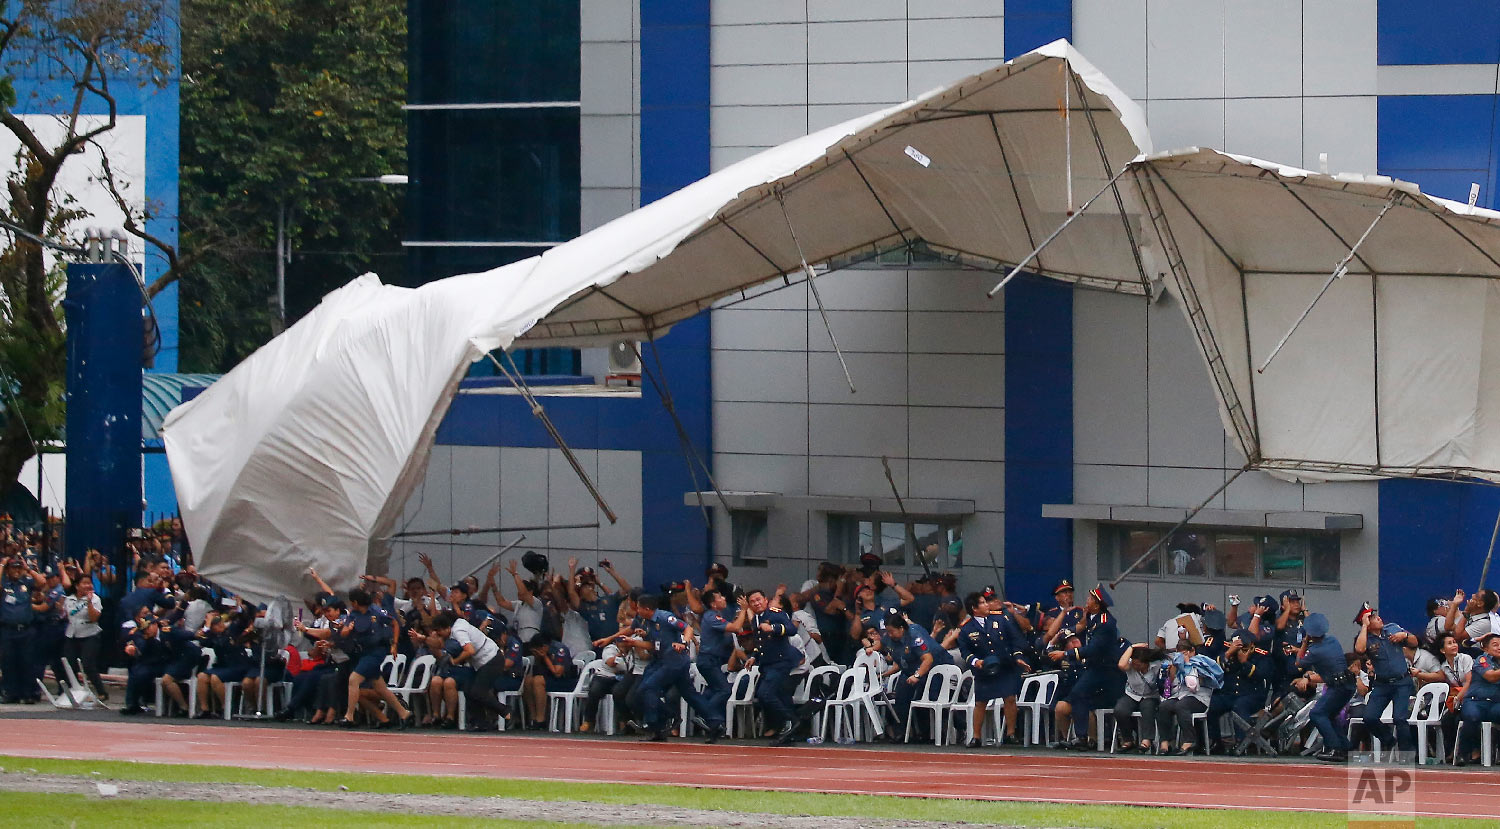 Philippine National Police officers and employees react as their tent is toppled by the downwash of a hovering police helicopter performing a salute during the 117th Philippine National Police Service anniversary at Camp Crame in Quezon City, a suburb of Manila, on Aug. 8, 2018. (AP Photo/Bullit Marquez)